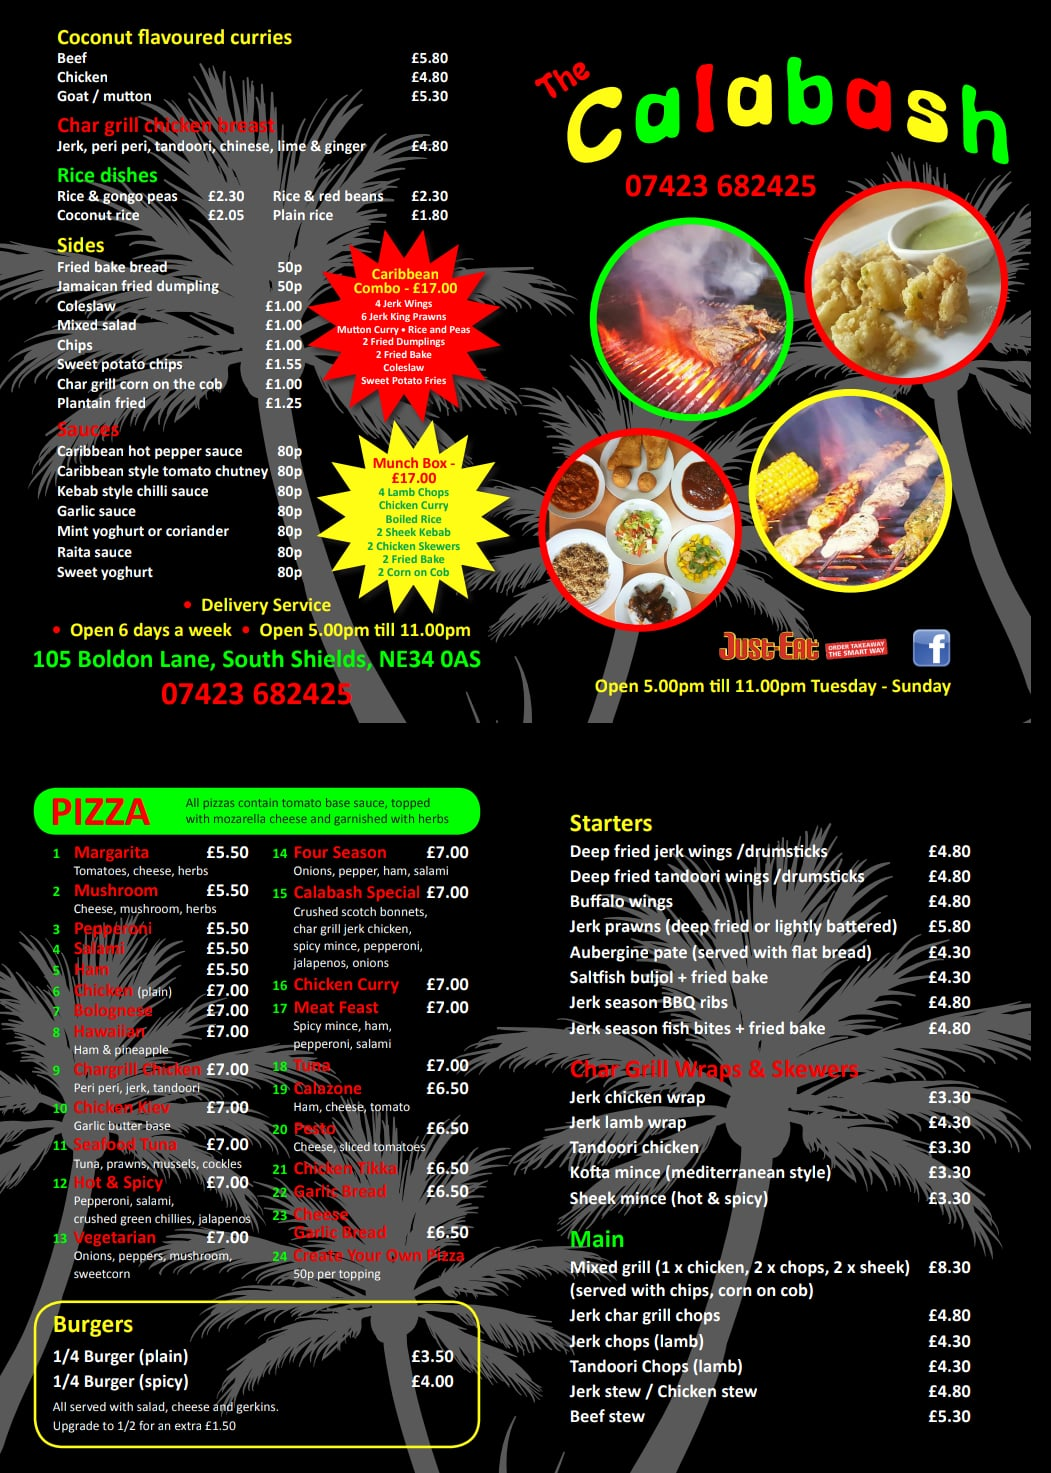 The Calabash 105 Boldon Lane South Shields NE34 0AS New Menu May 2018